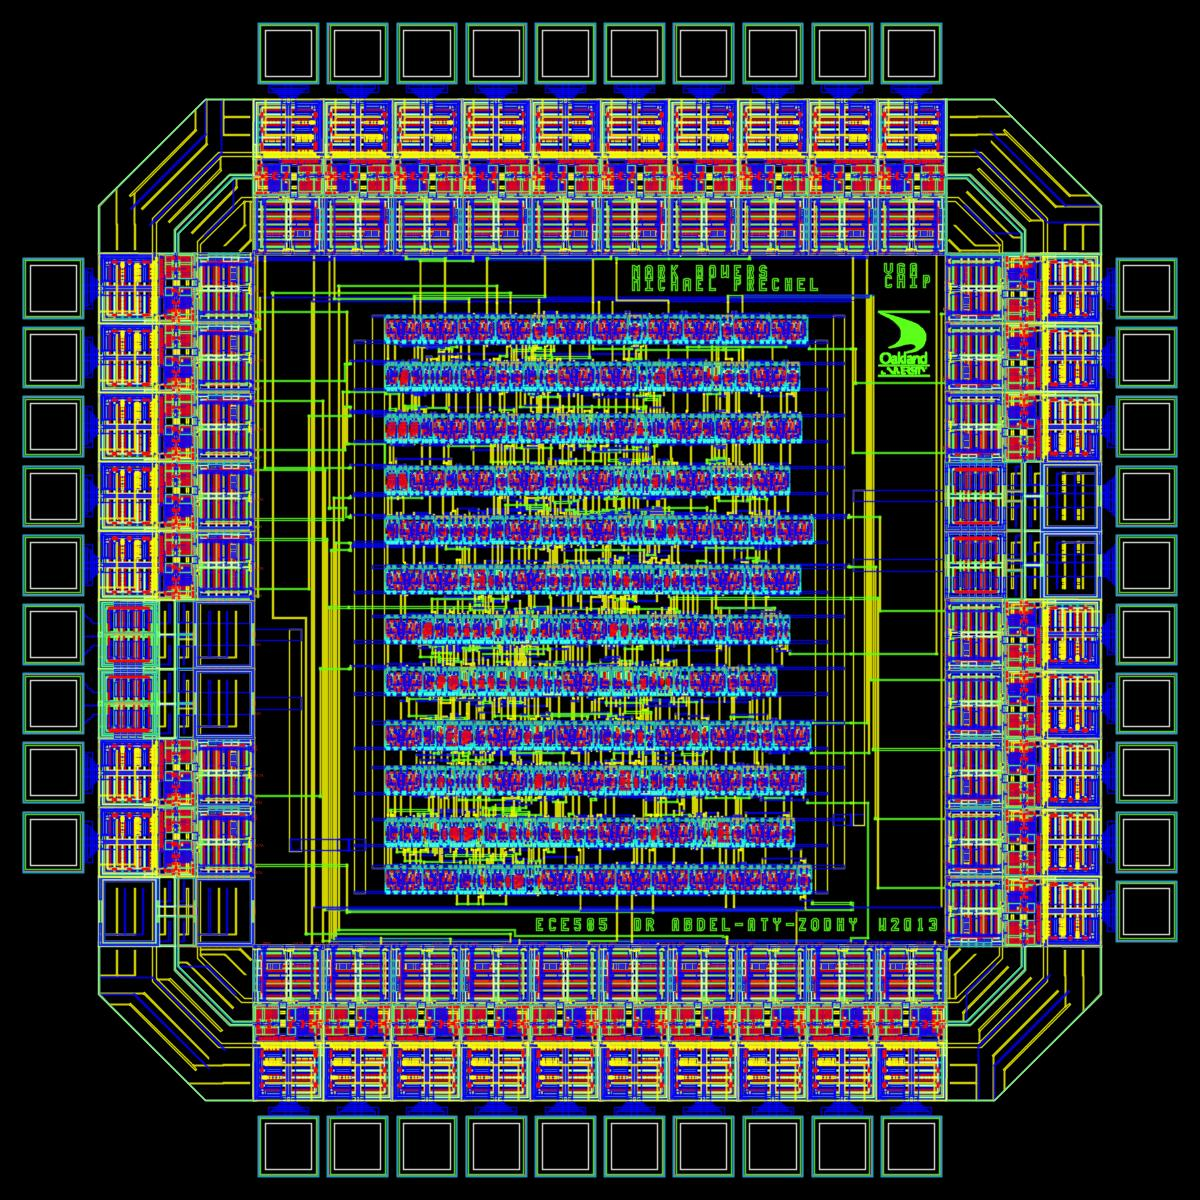 Layout of the VGA ASIC